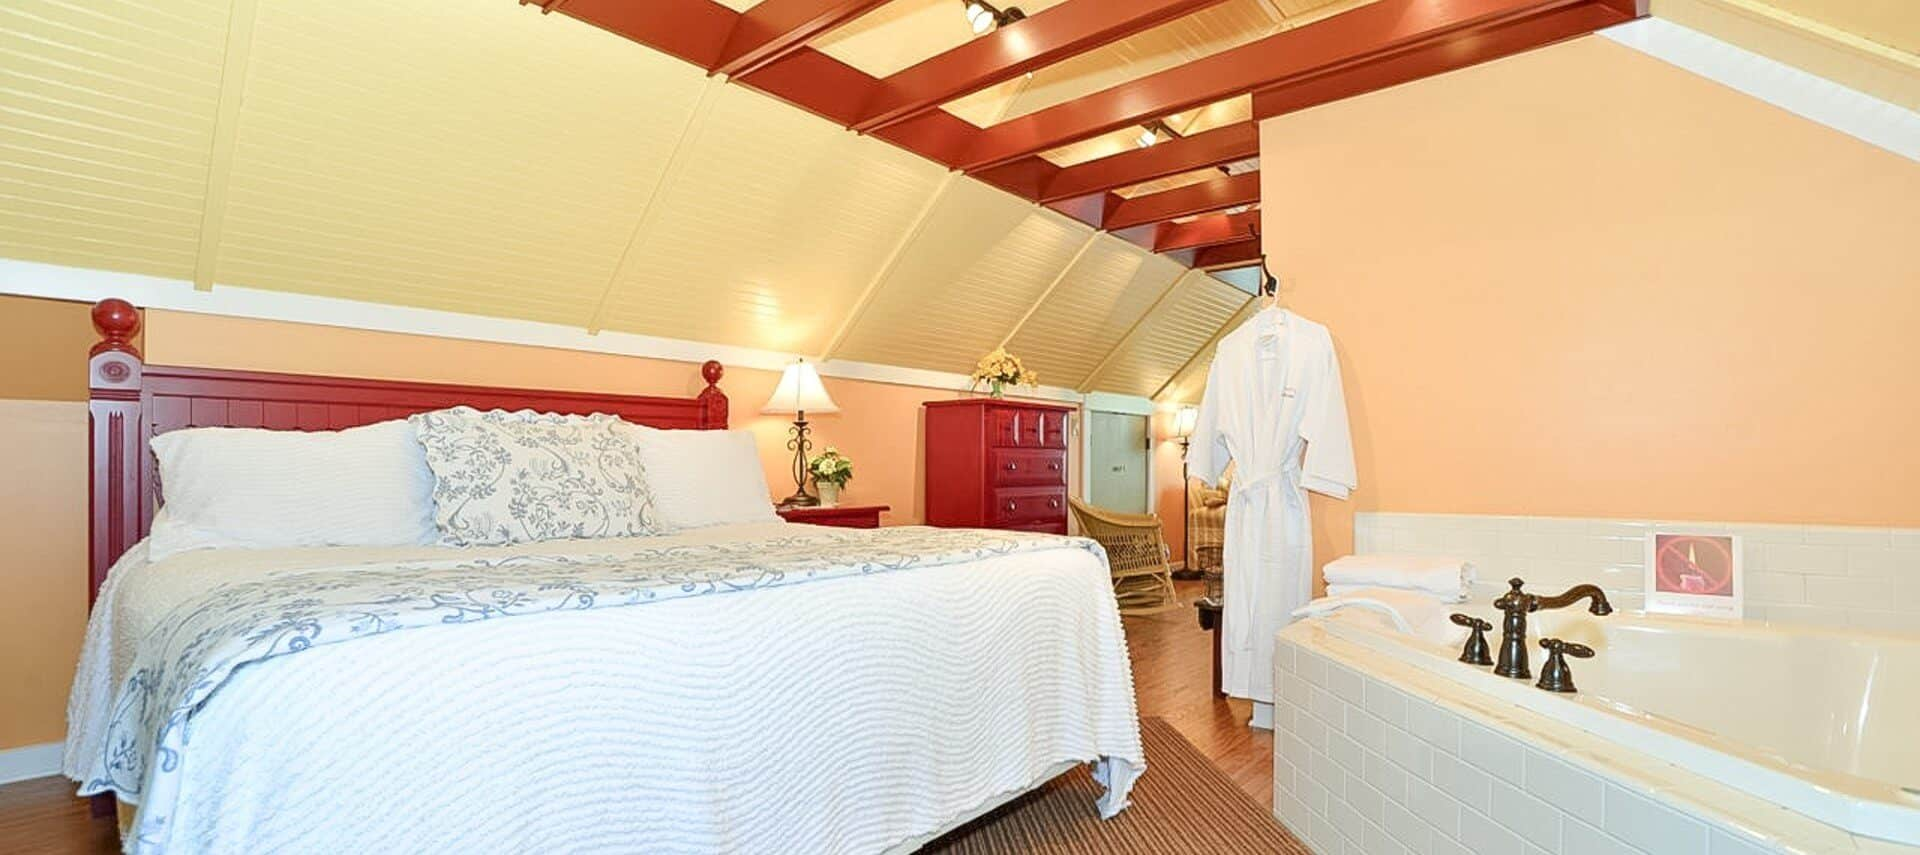 King sized bed with red headboard in loft bedroom with large jacuzzi tub, dresser and open wood beam ceiling